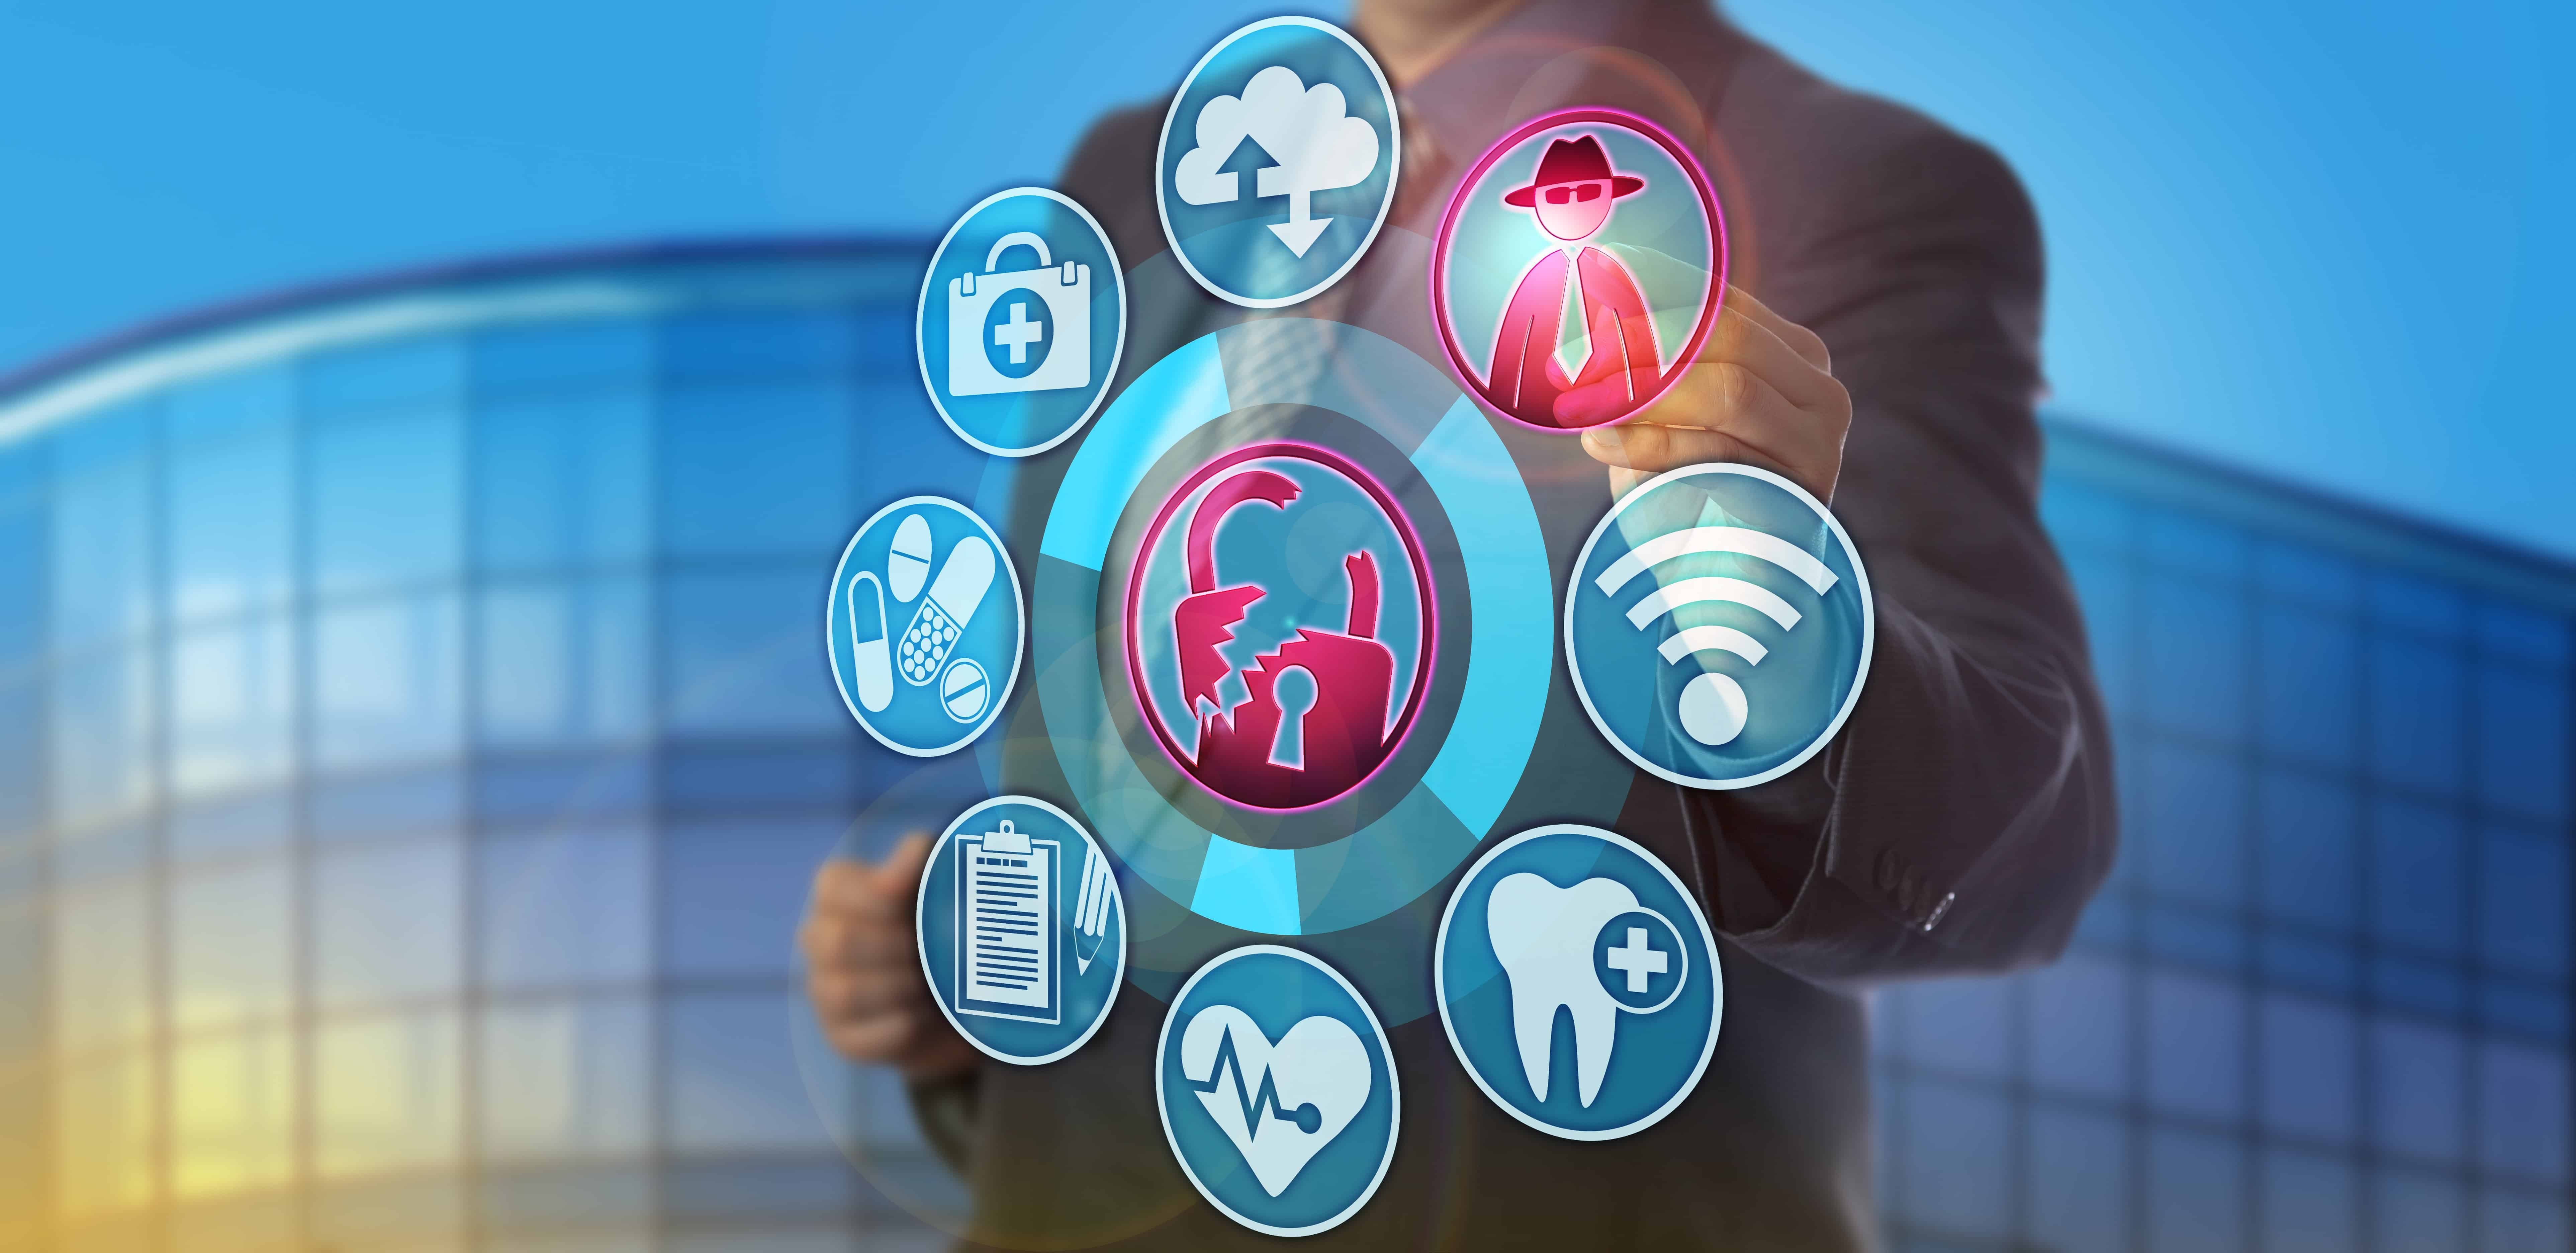 The 5 top healthcare cyber threats, according to the U.S. Department of Health & Human Services' new guide